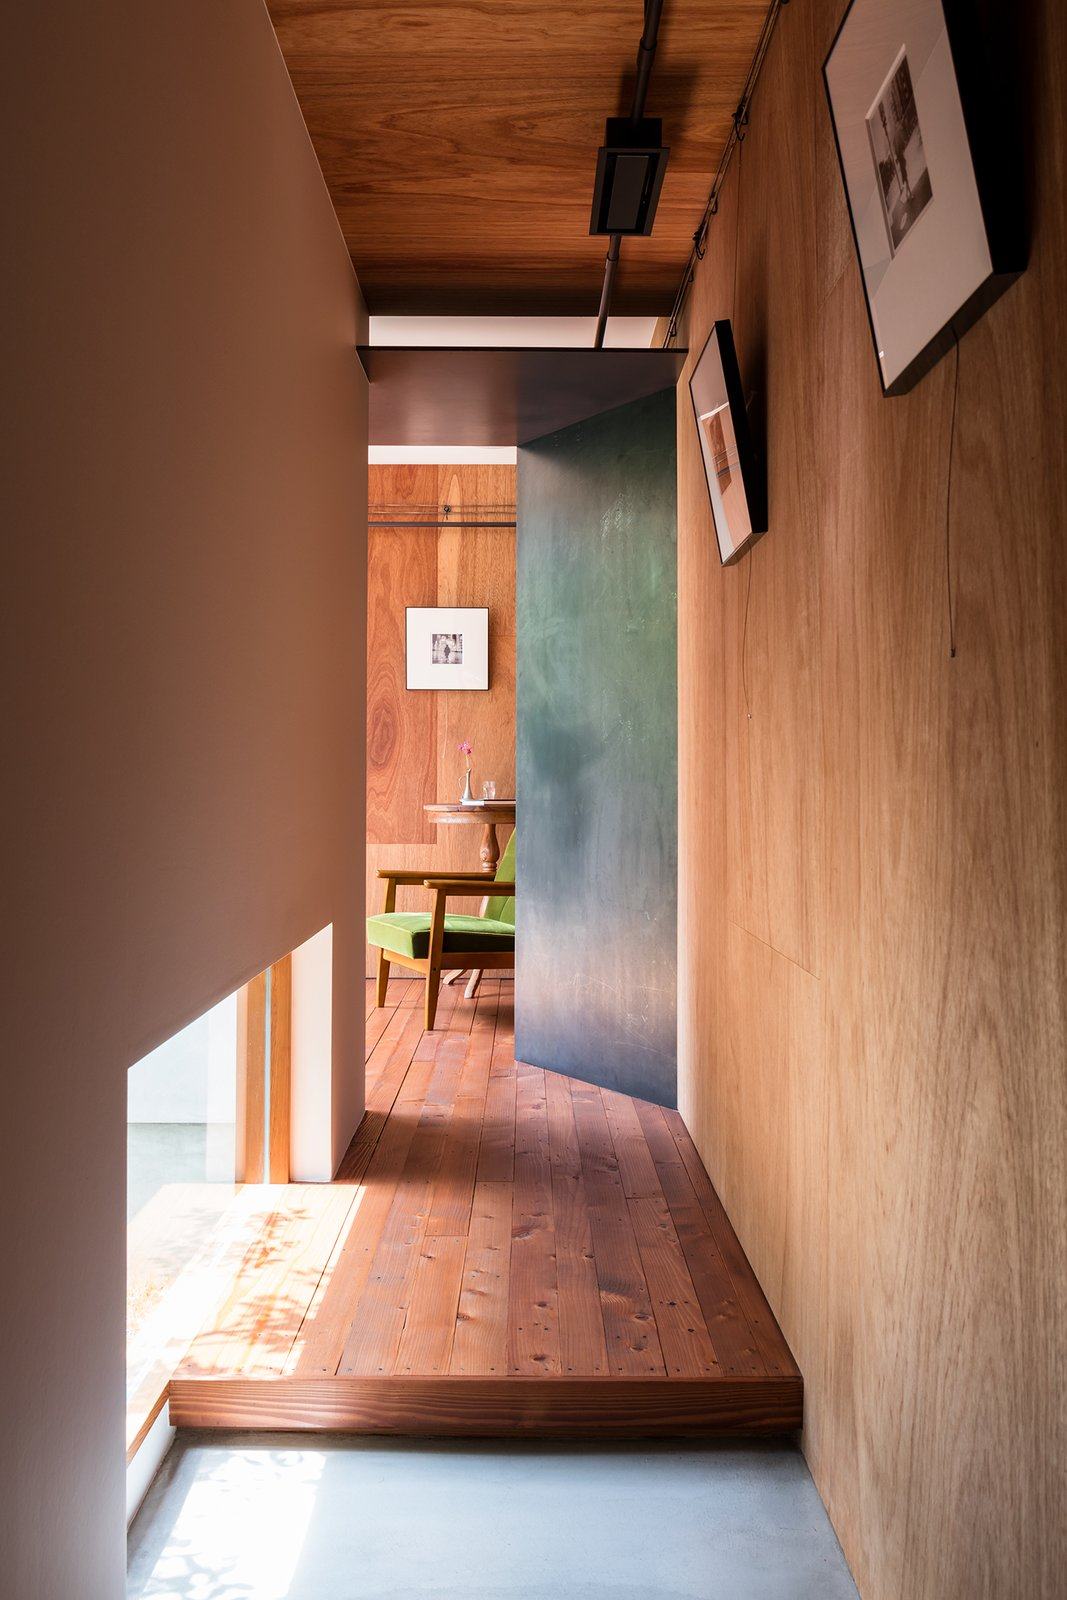 Medium Hardwood, Windows, Metal, and Picture  Best Windows Picture Medium Hardwood Photos from Find Out How a Japanese Architect Created a Fluid Live/Work Space For a Photographer